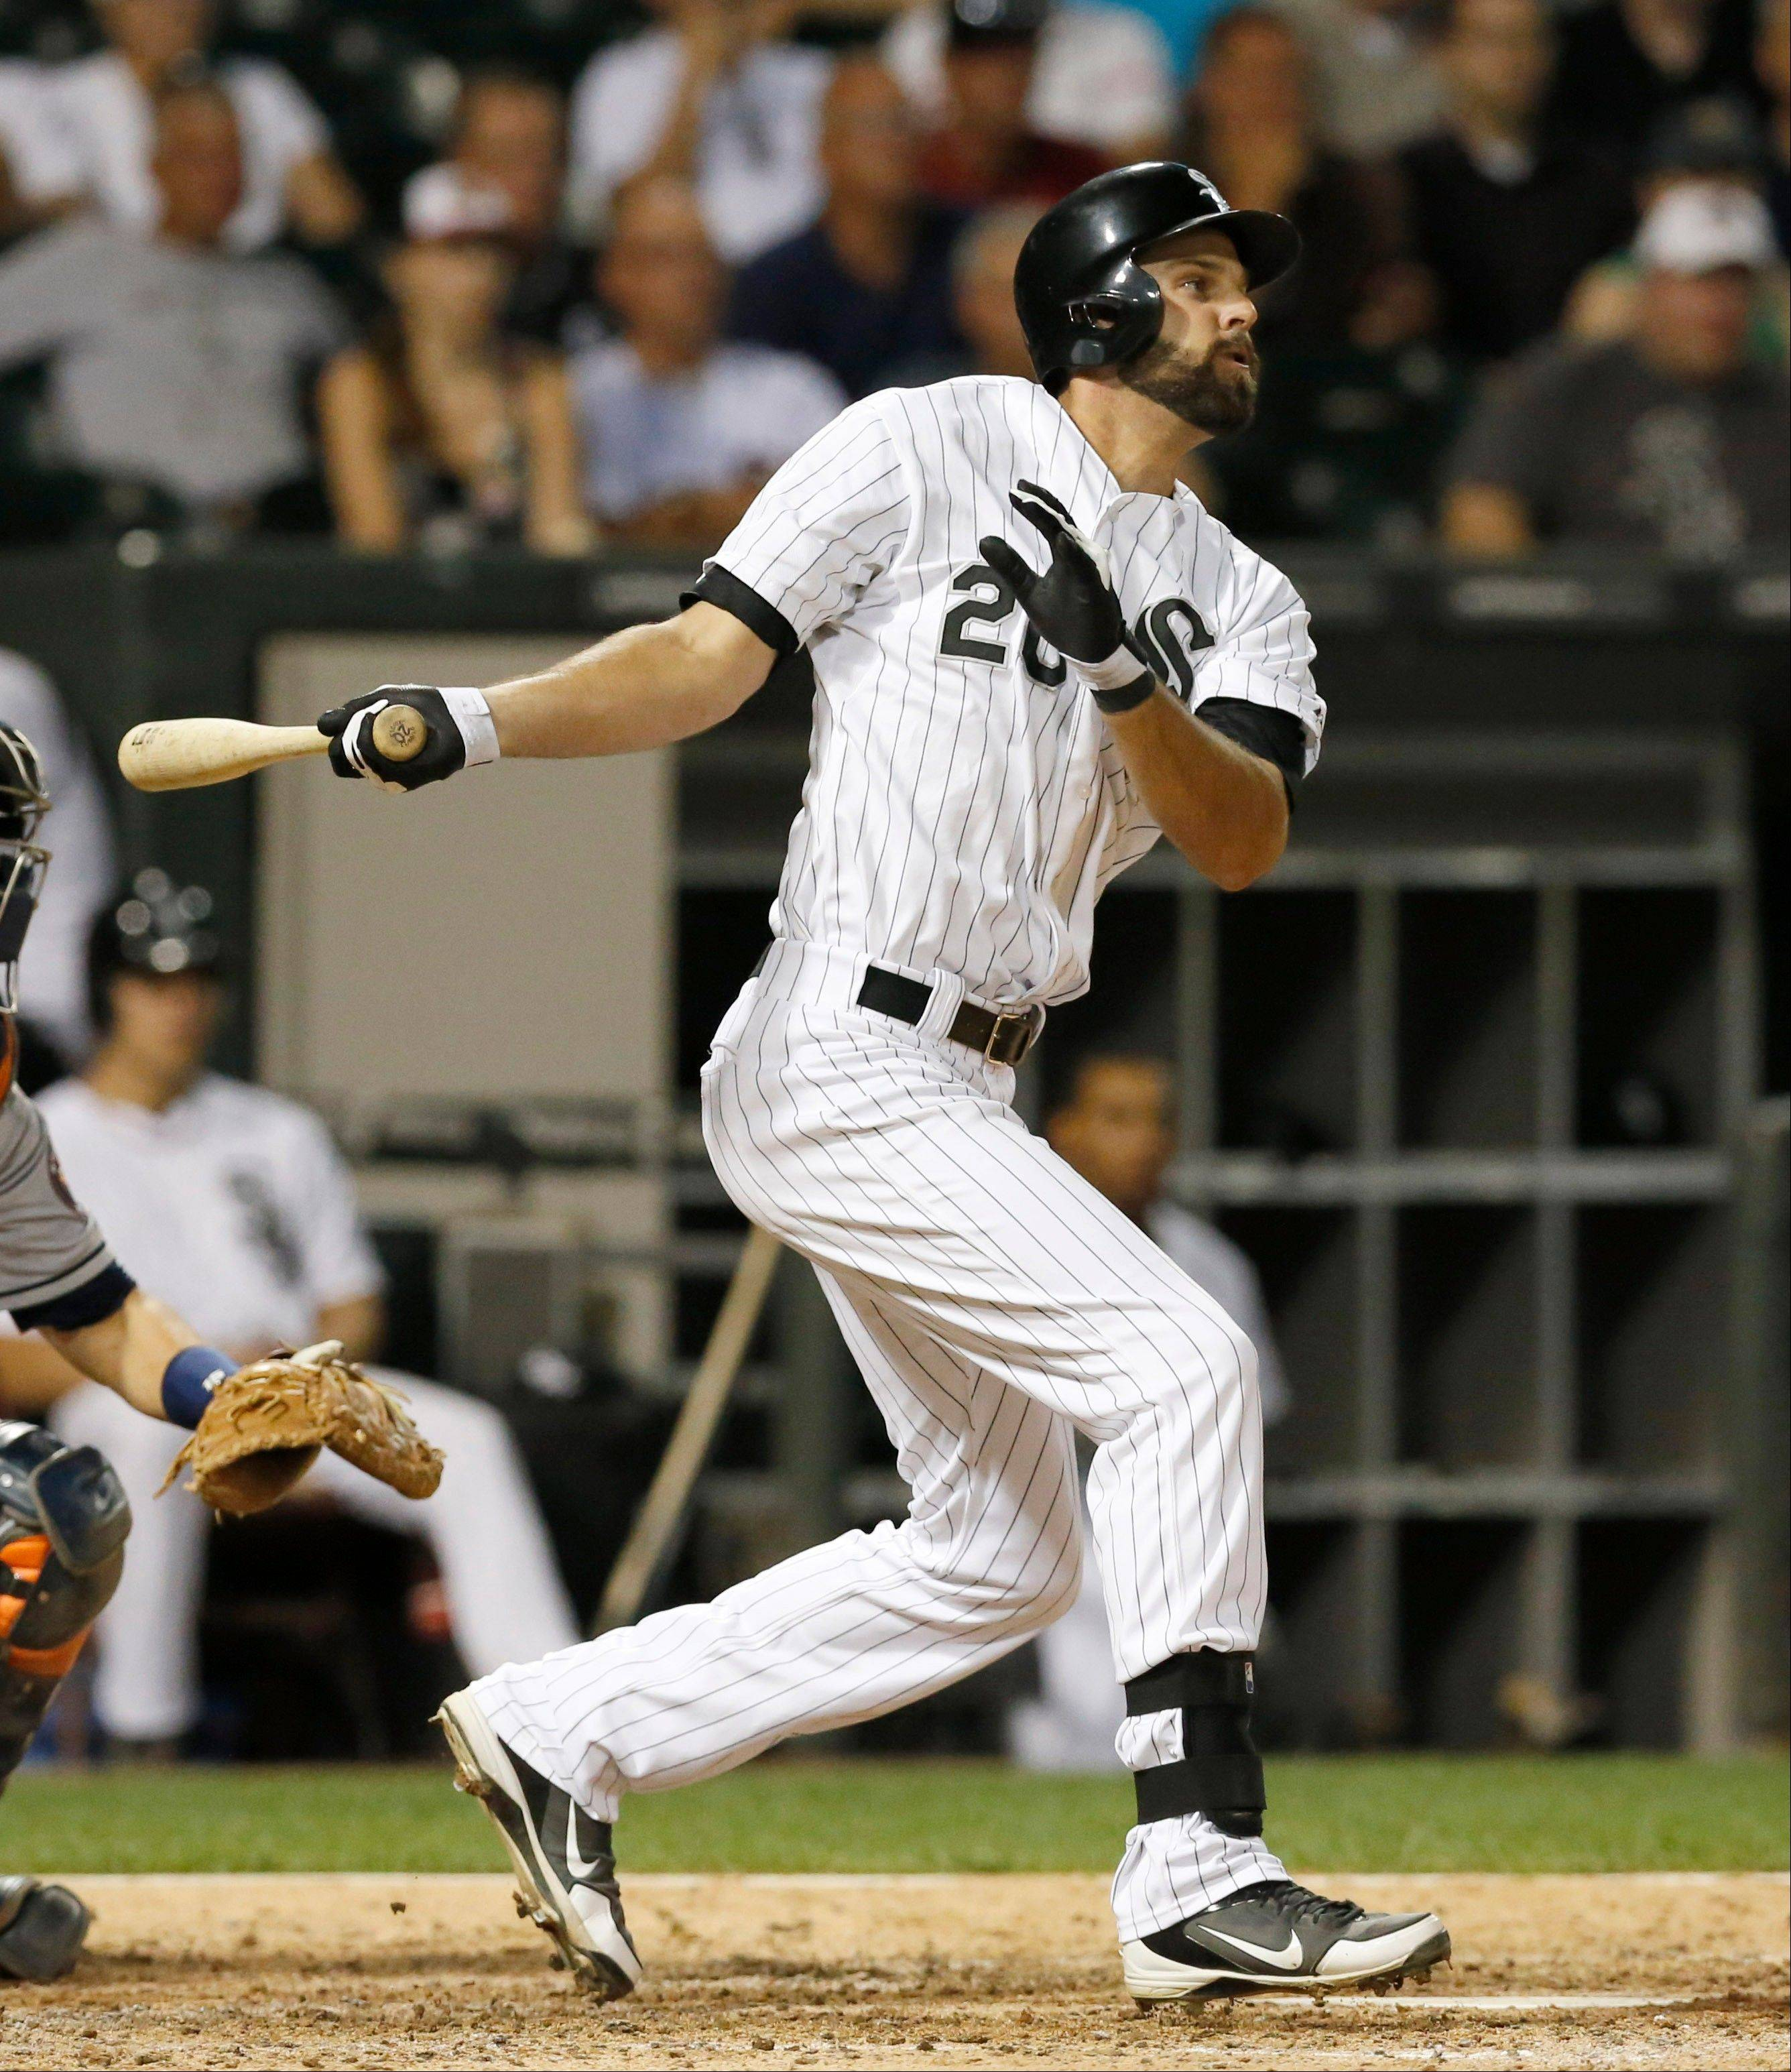 White Sox's Jordan Danks hits a two-run single off Houston Astros relief pitcher Erik Bedard, scoring Alexei Ramirez and Gordon Beckham, during the eighth inning of a baseball game Tuesday, Aug. 27, 2013, in Chicago.